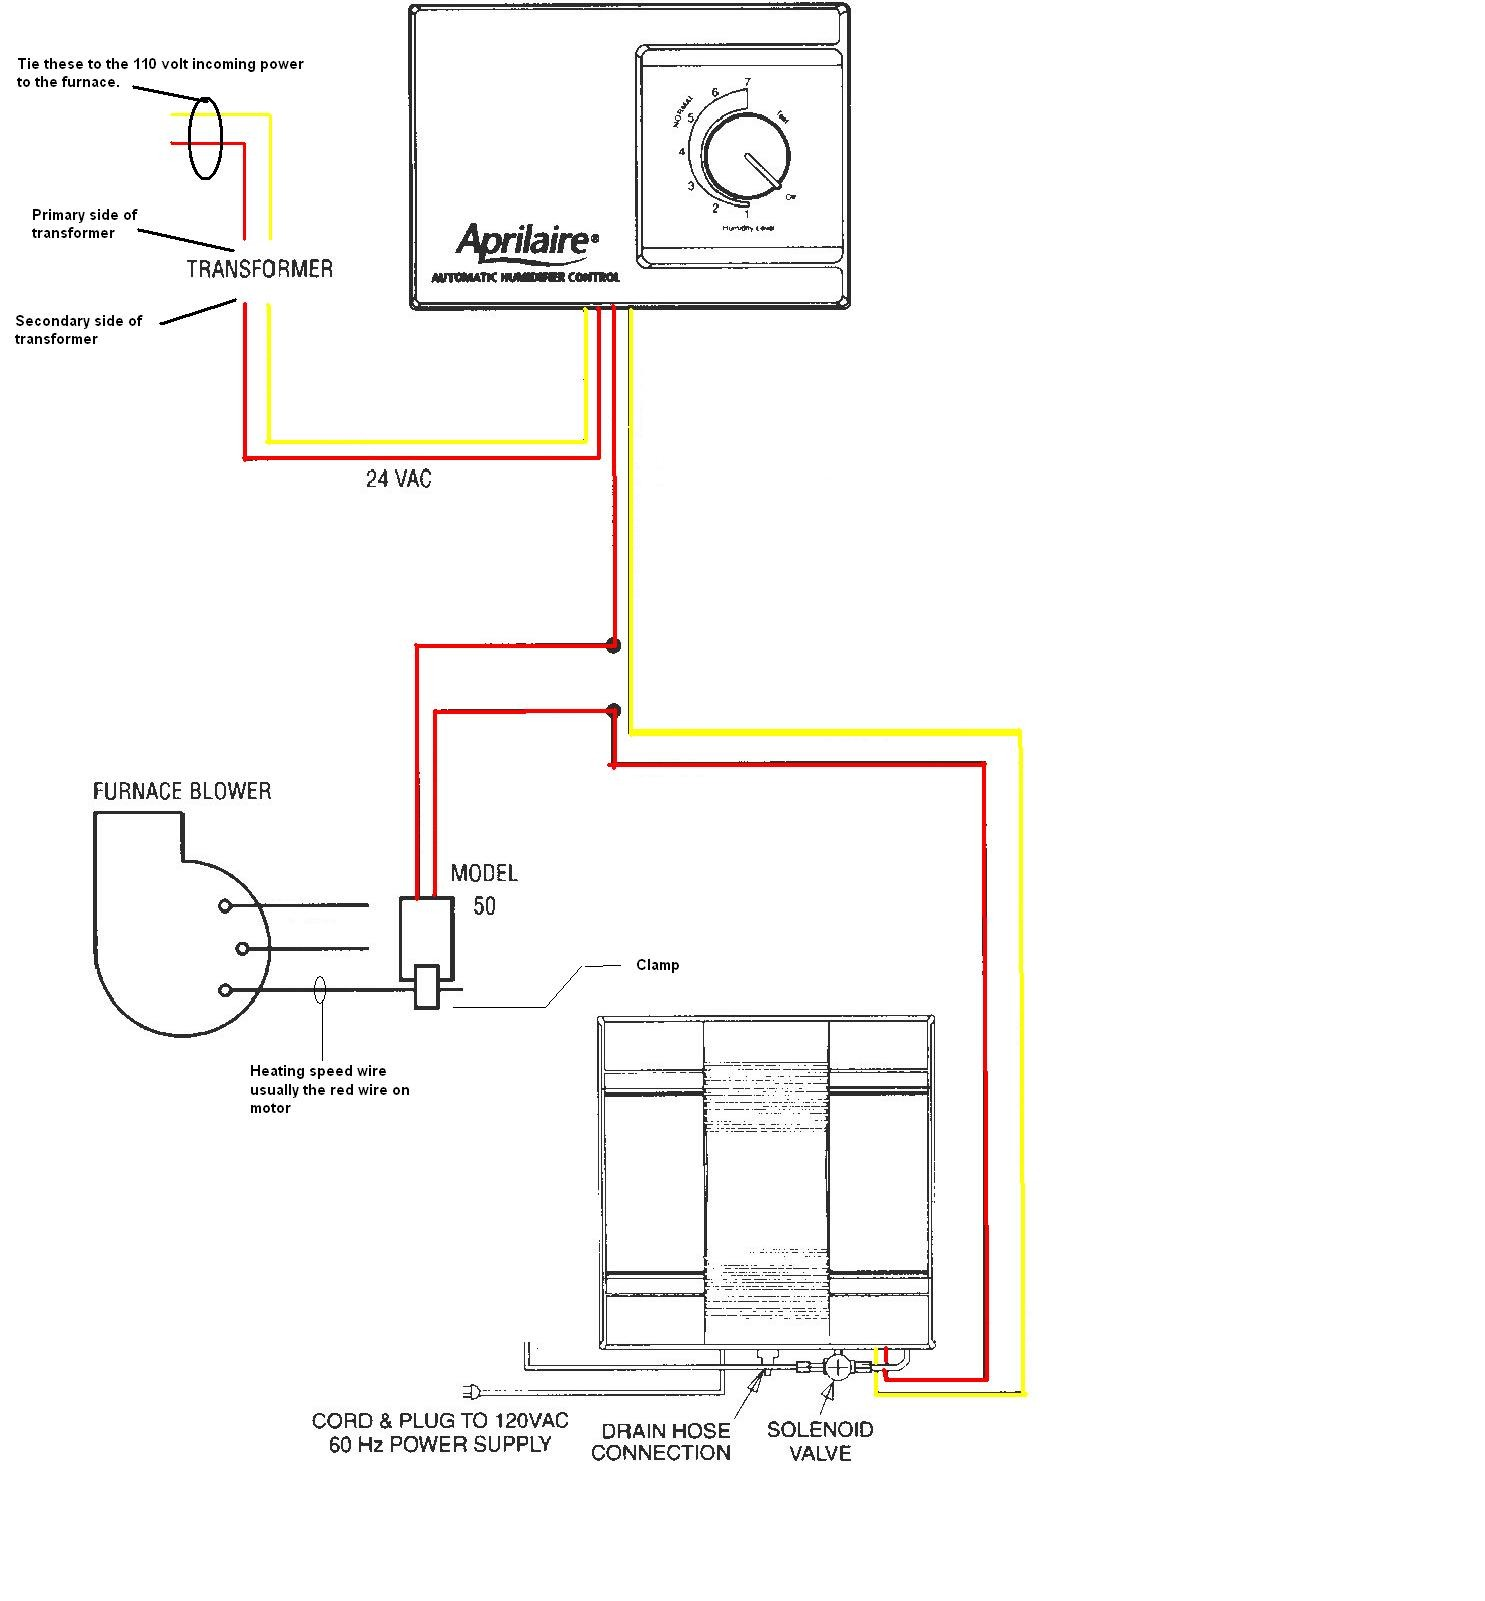 2Wire Thermostat Wiring Diagram i have an aprilaire 700 m humidifier that  can not wire for